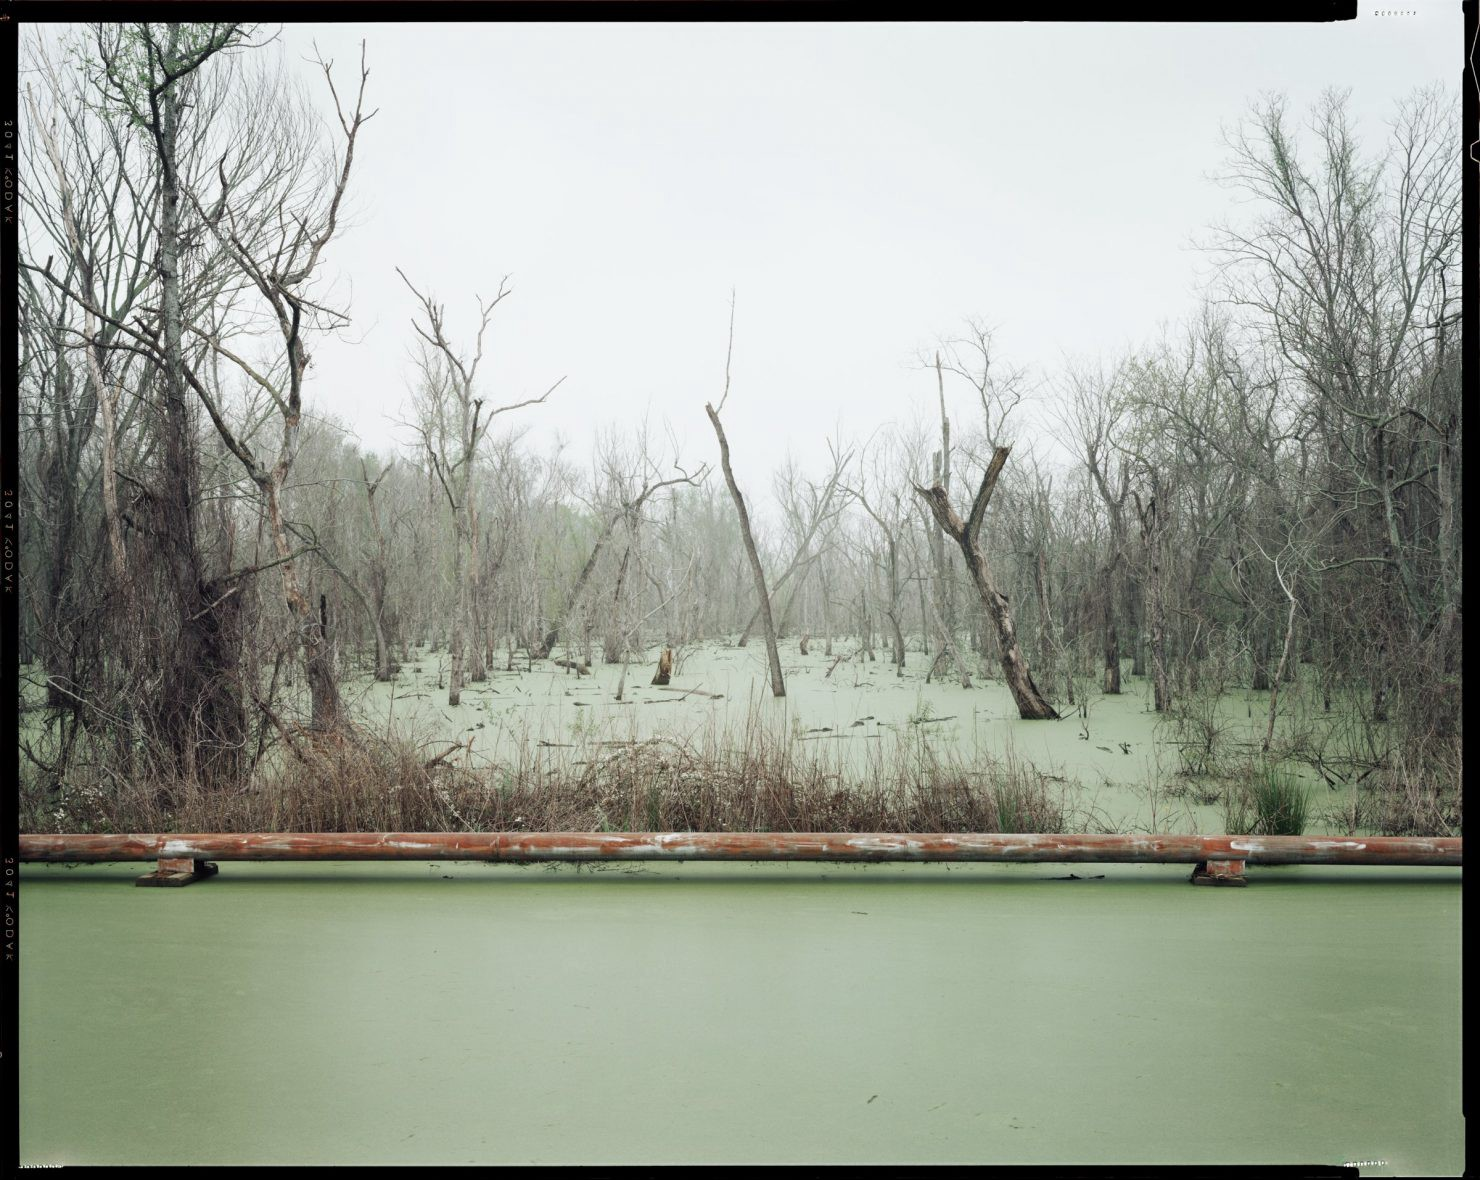 A swampy scene with a pipe running horizontally and trees poking up through the water.